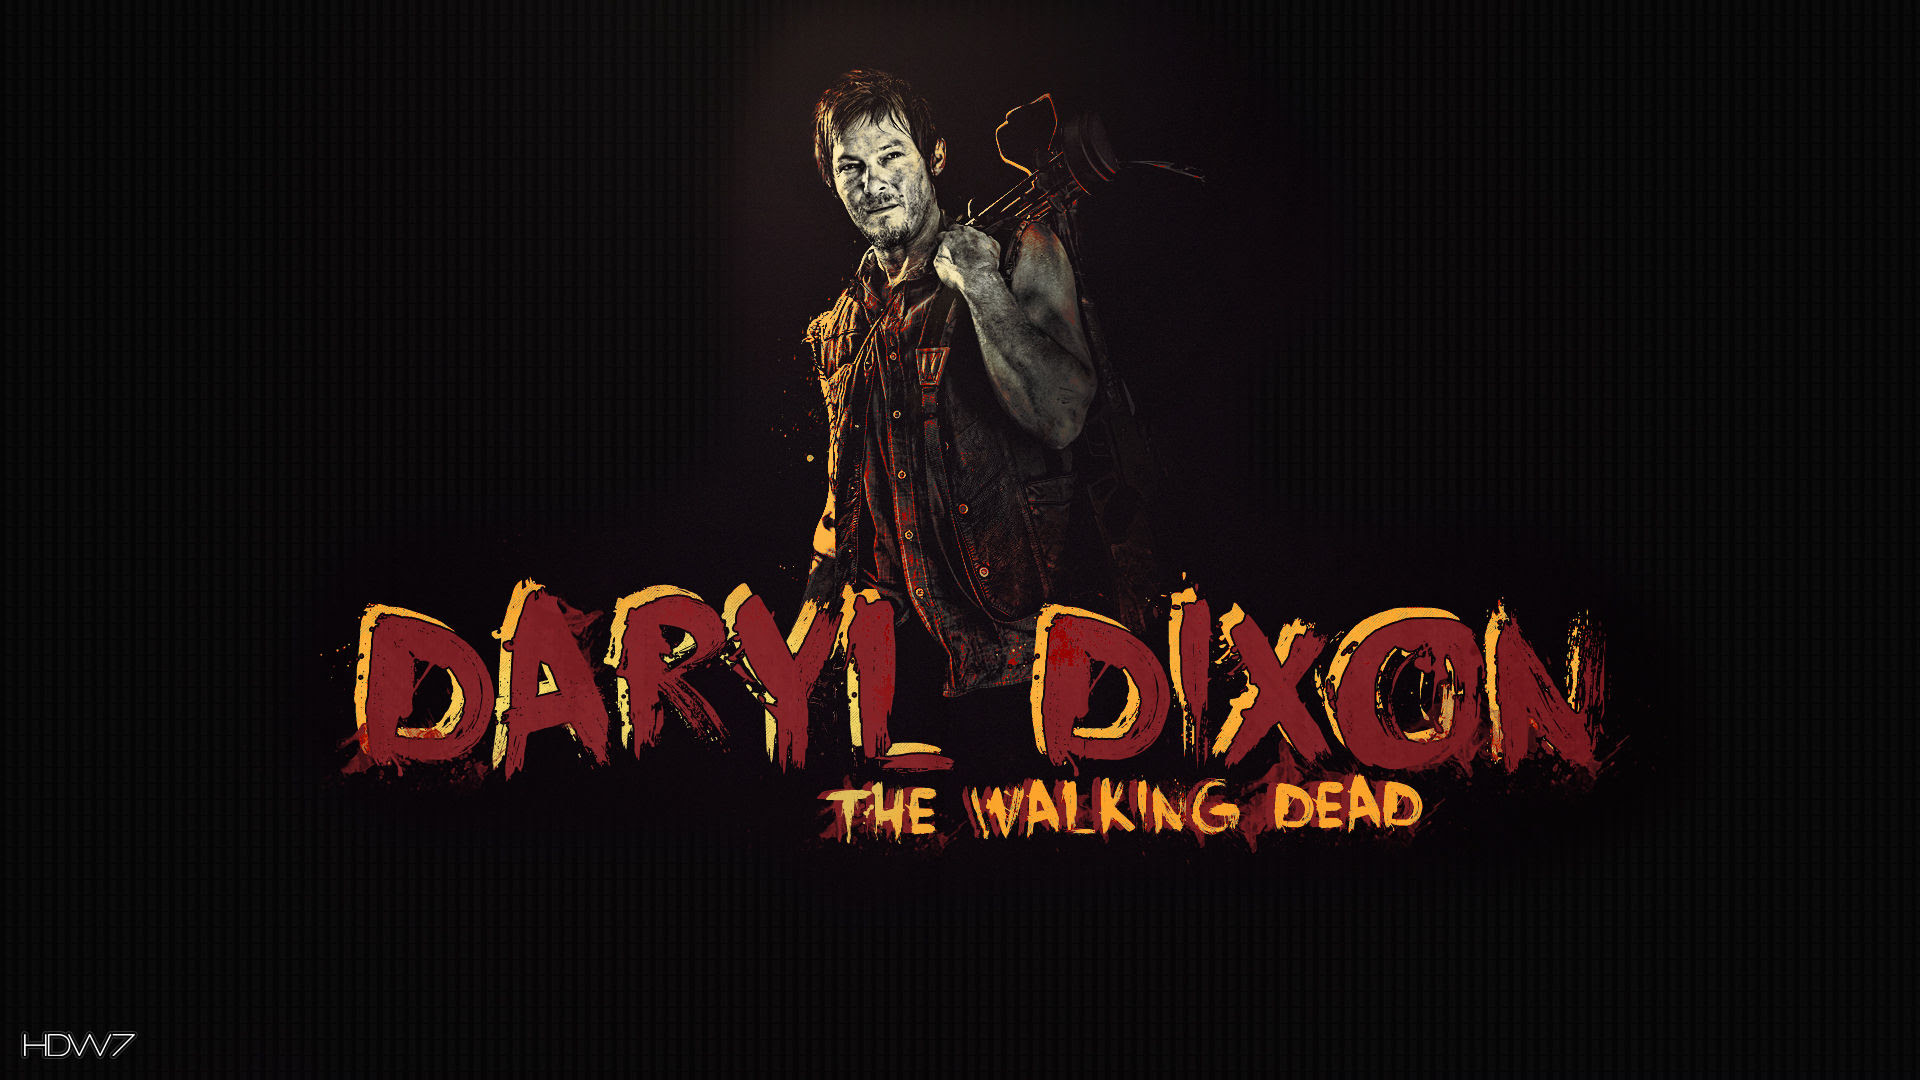 Daryl Dixon The Walking Dead Hd Wallpaper Gallery 7